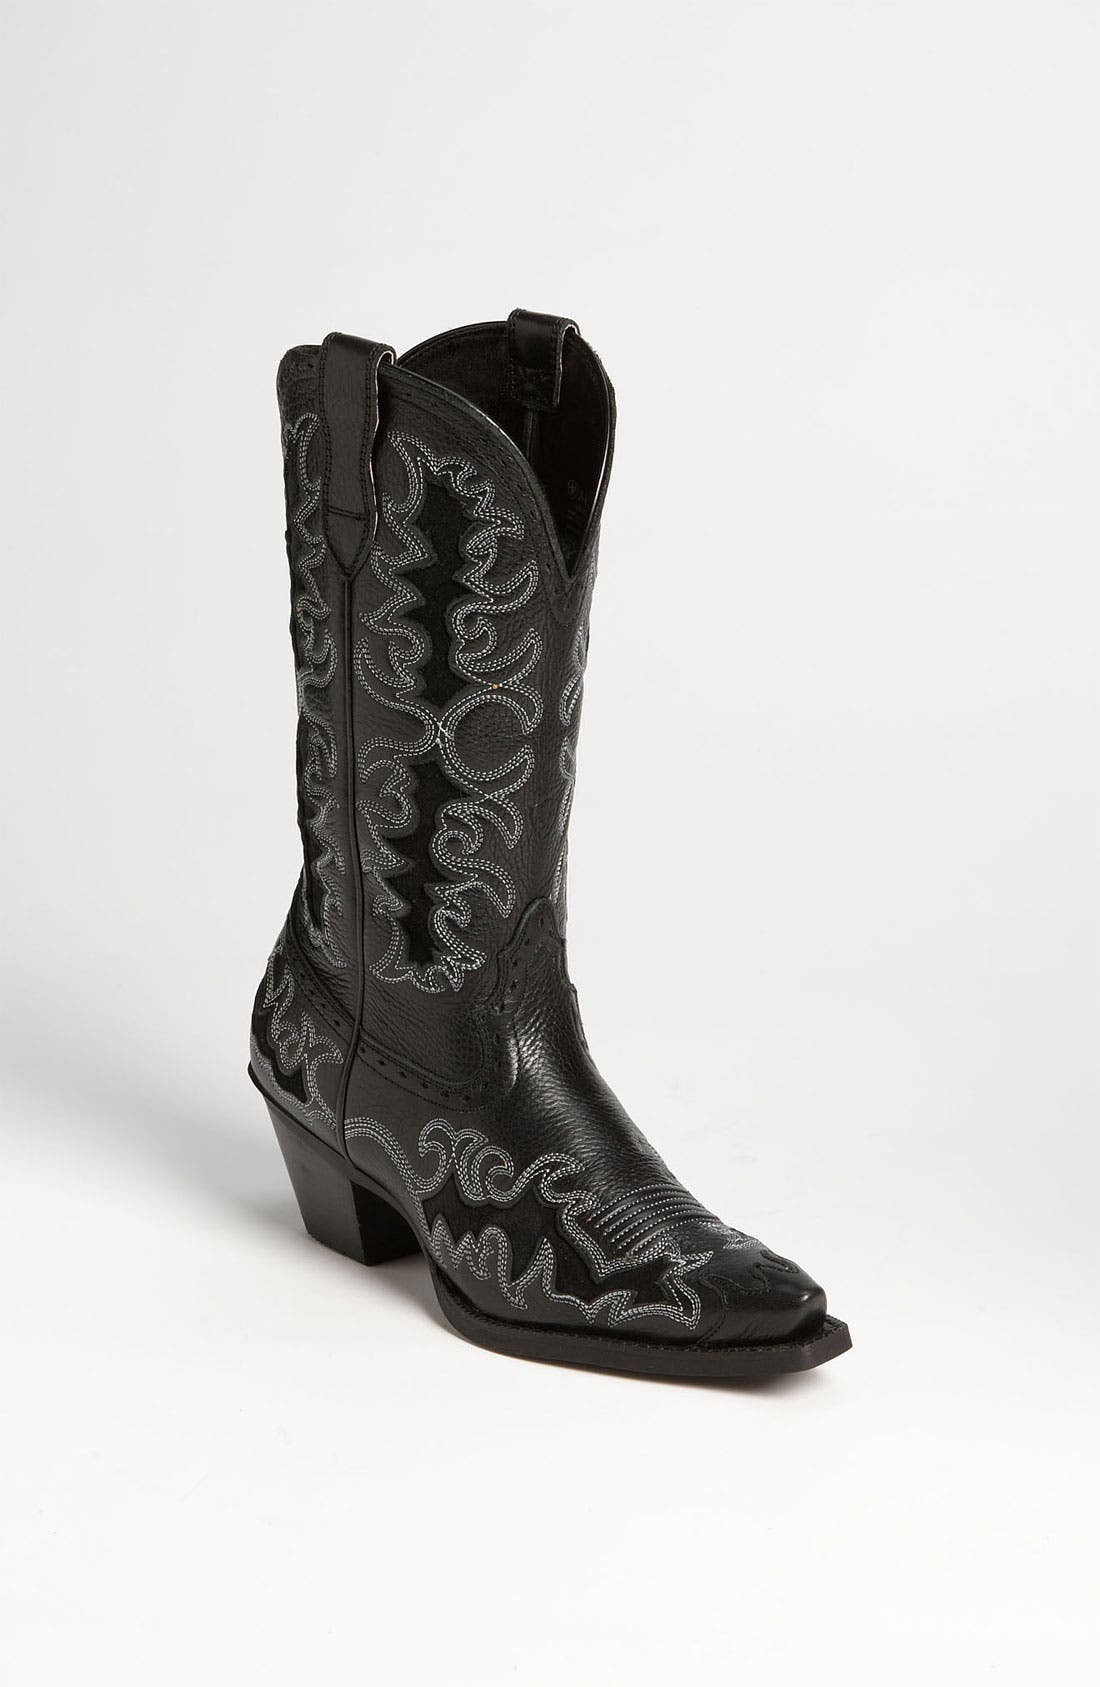 Main Image - Ariat 'Dandy' Snip Toe Boot